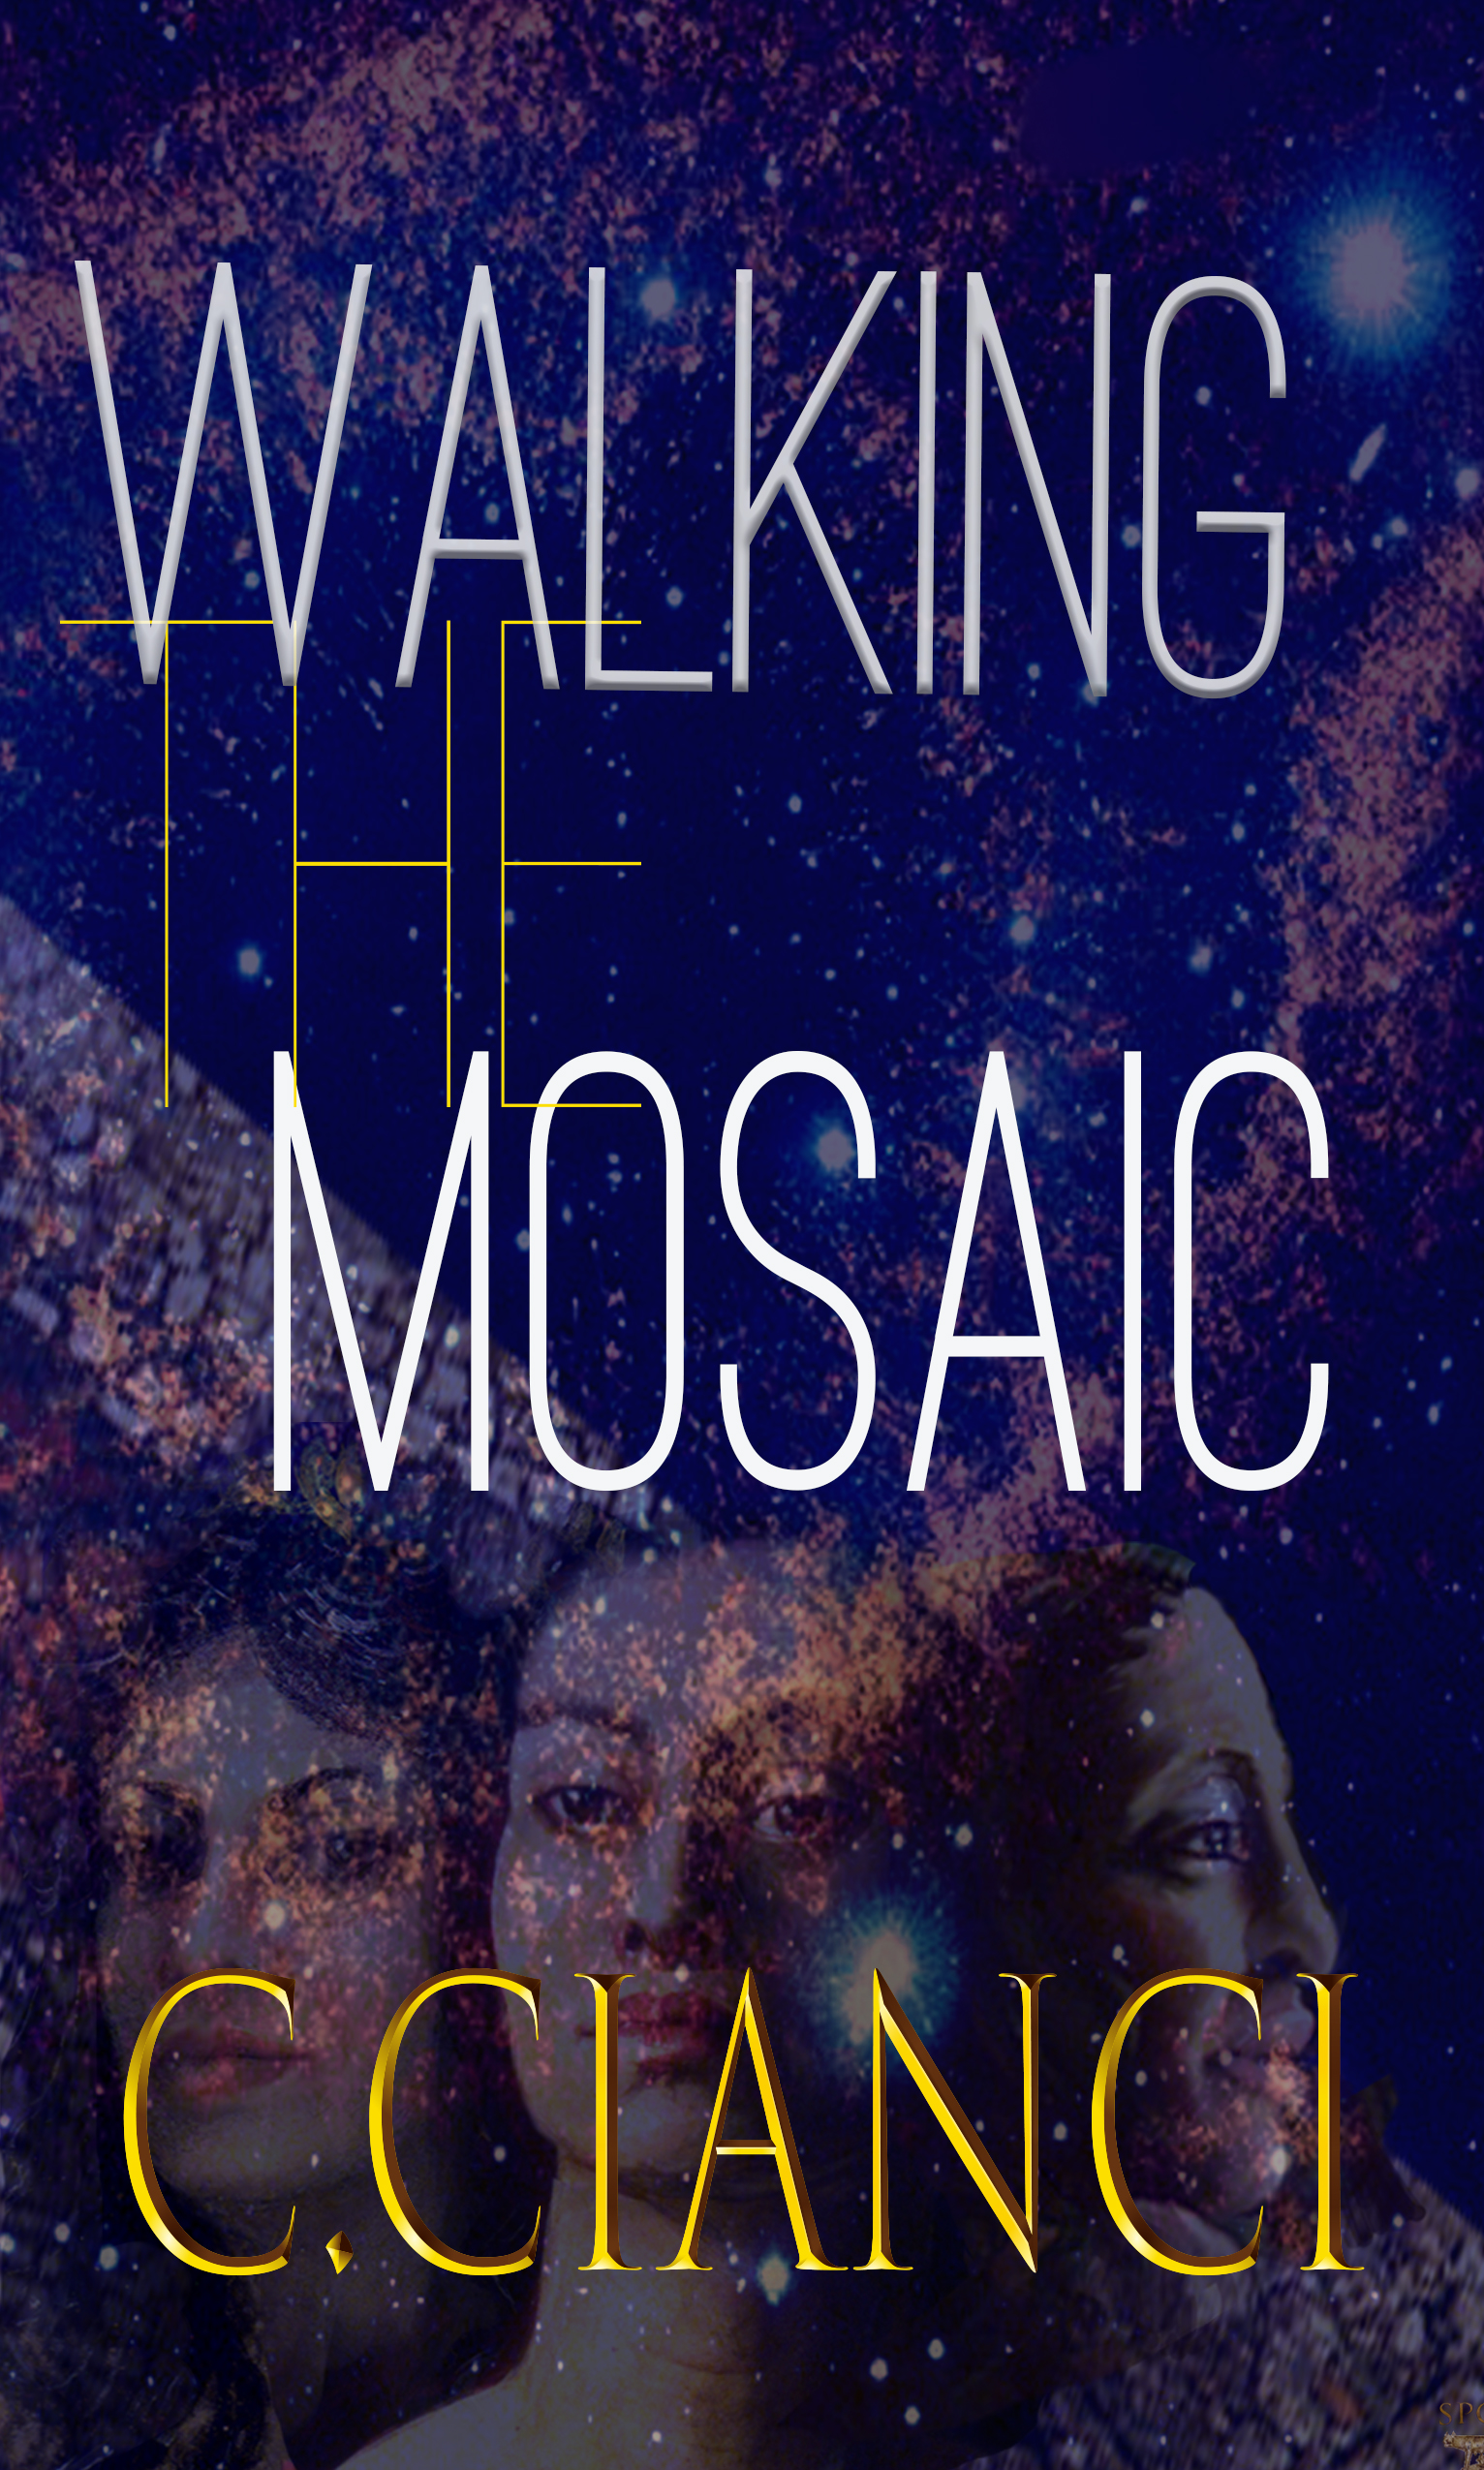 Cover of the novel Walking the Mosaic by C. Cianci showing a blue mottled background with the ghostly images of three women.